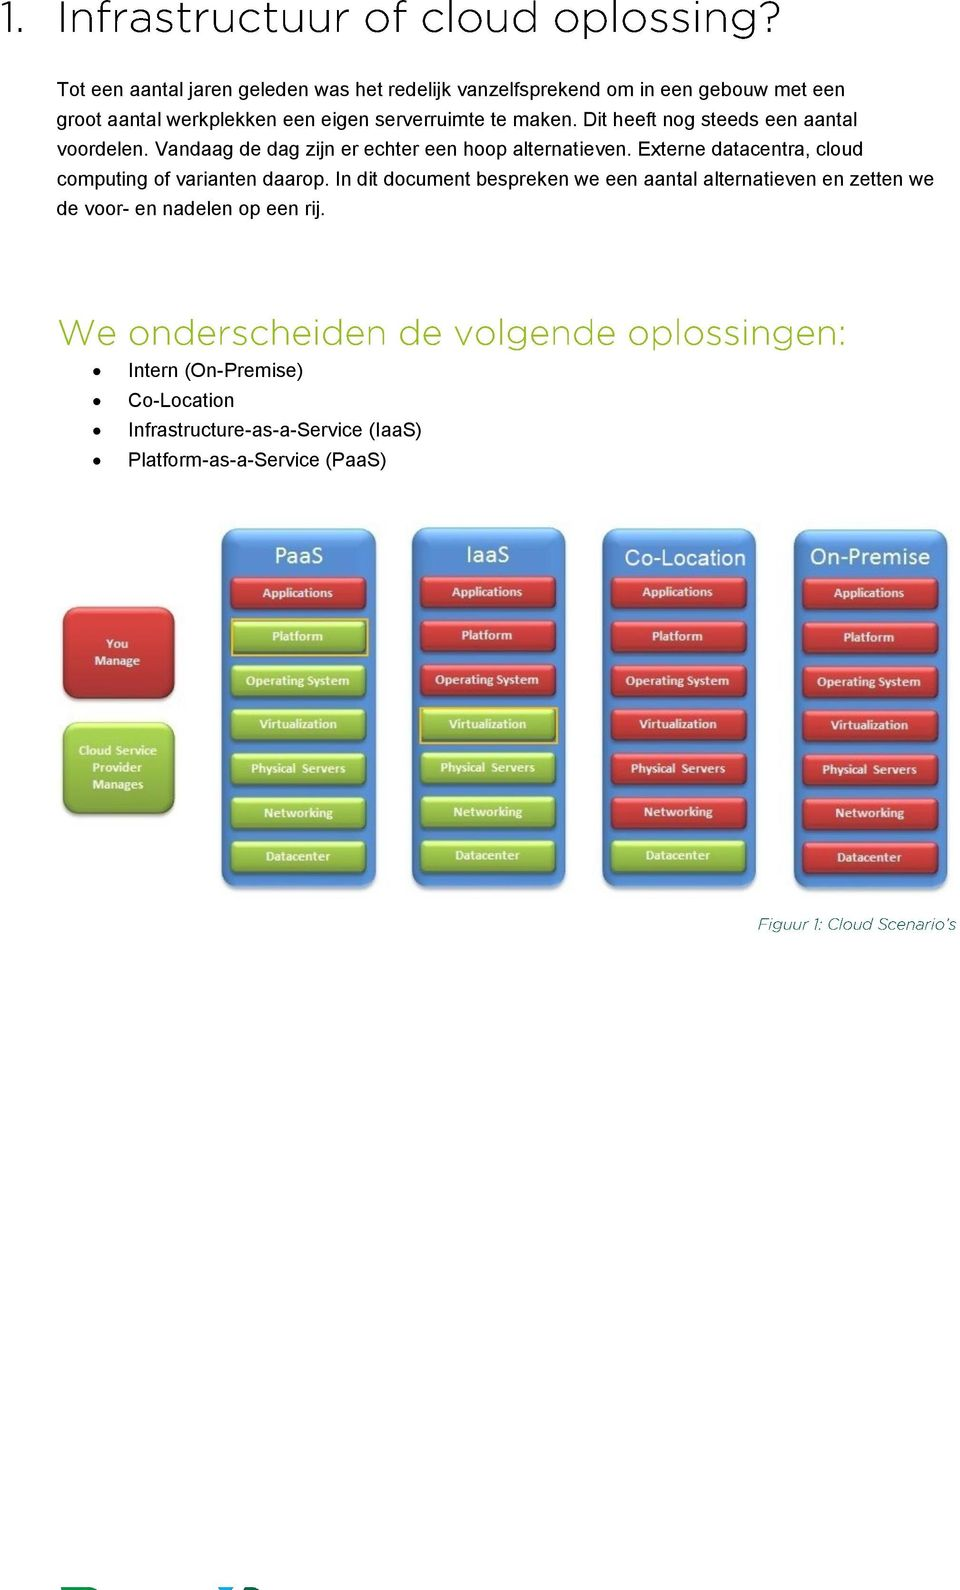 Externe datacentra, cloud computing of varianten daarop.